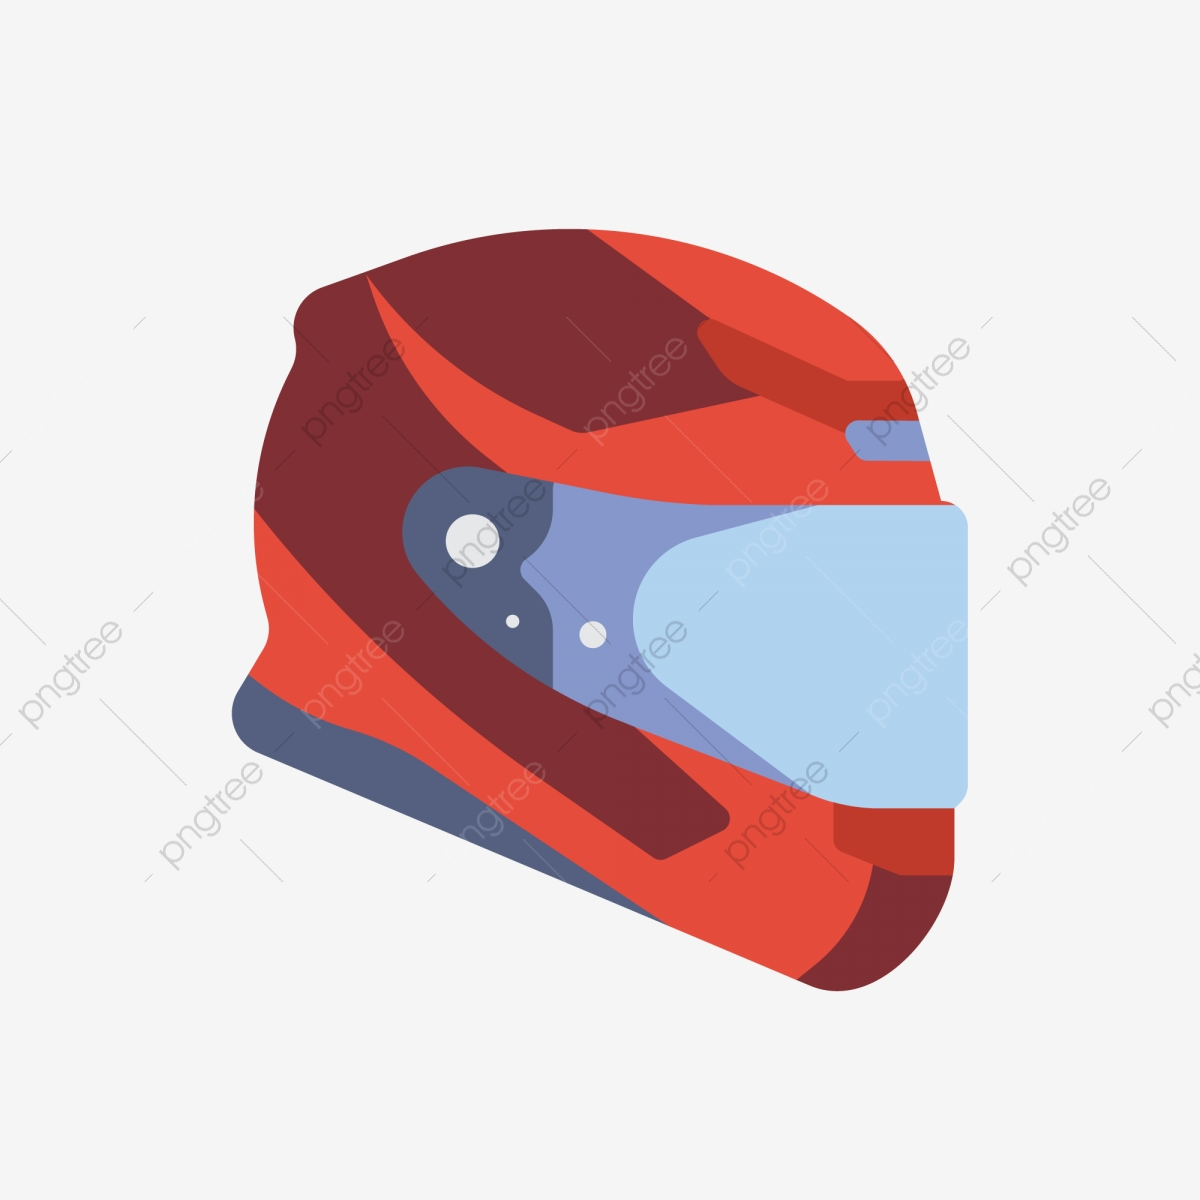 Motorcycle Driver Motorcycle Cap Helmet Security Tool Icon Illustration Png And Vector With Transparent Background For Free Download